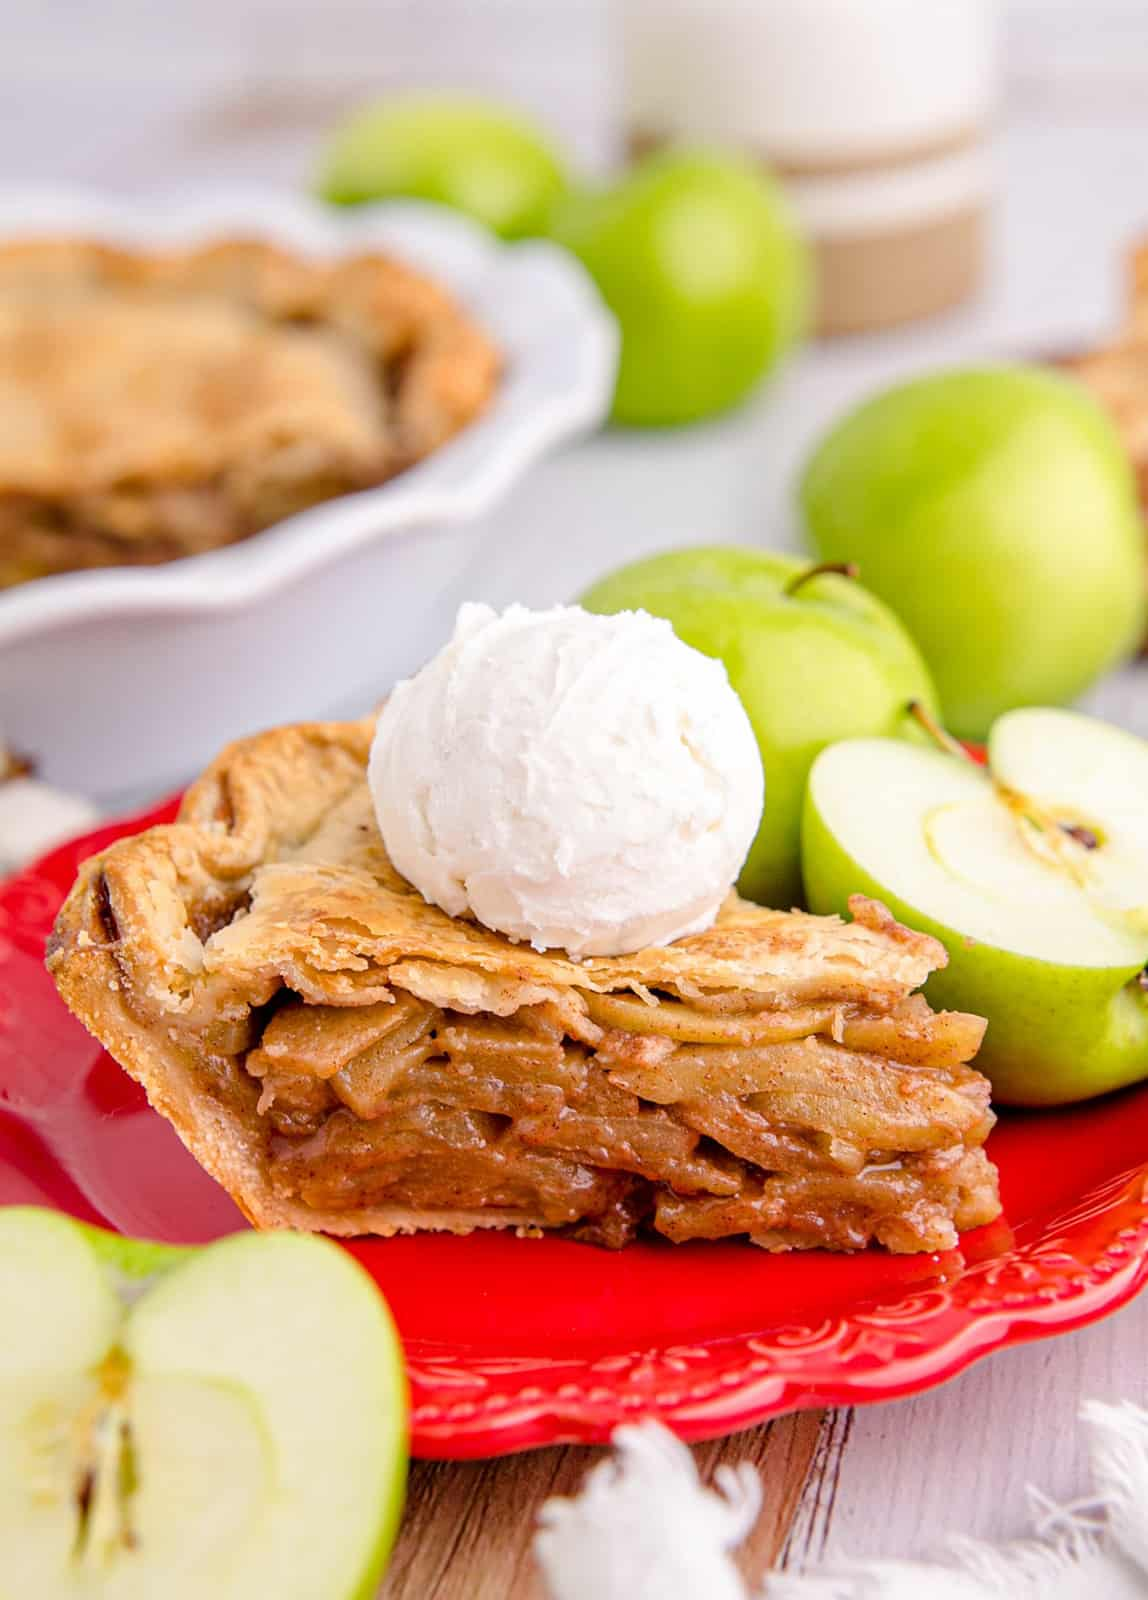 Slice of Apple Pie on red plate with ice cream and apples.